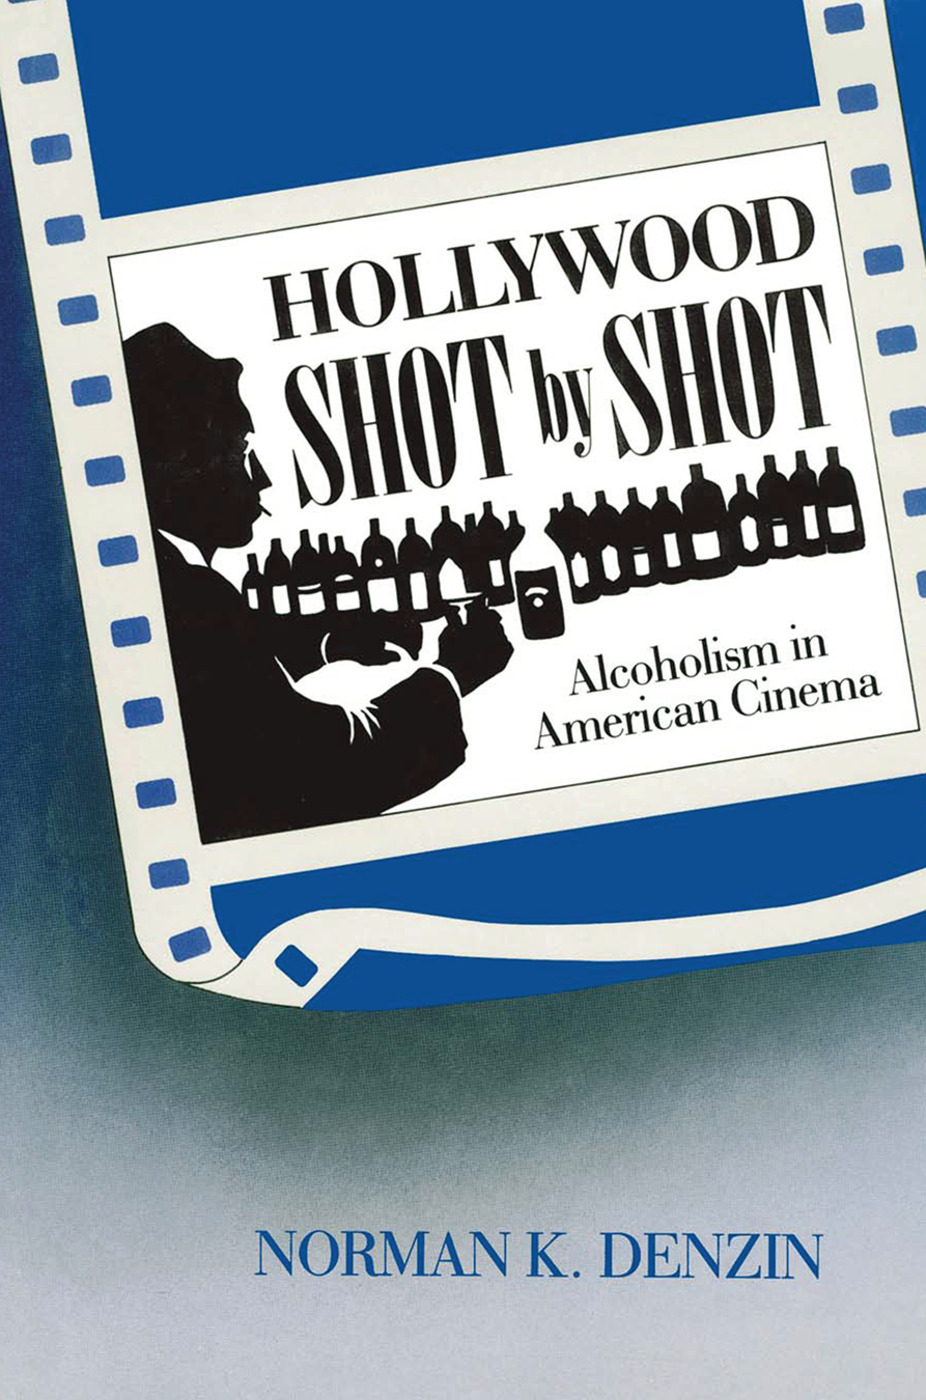 Hollywood Shot by Shot: Alcoholism in American Cinema, 1st Edition (Paperback) book cover